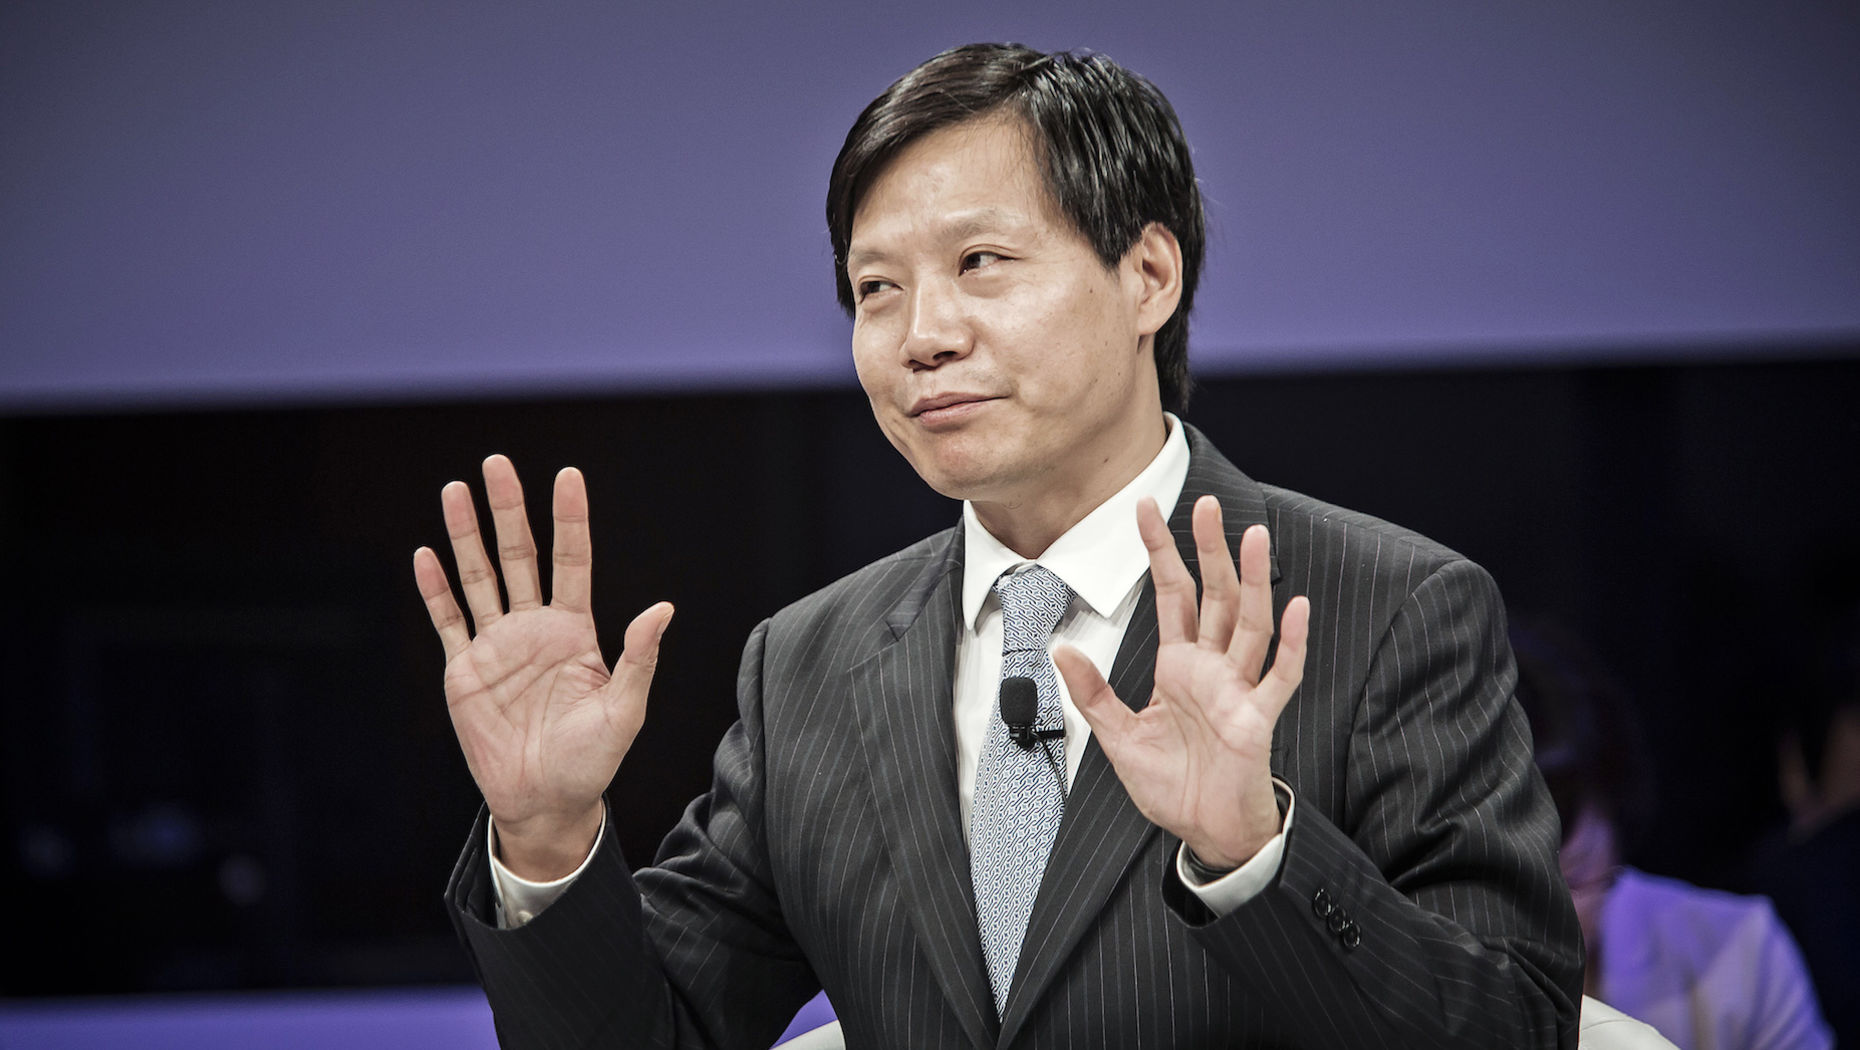 Xiaomi Chairman and CEO Lei Jun. Photo by Bloomberg.